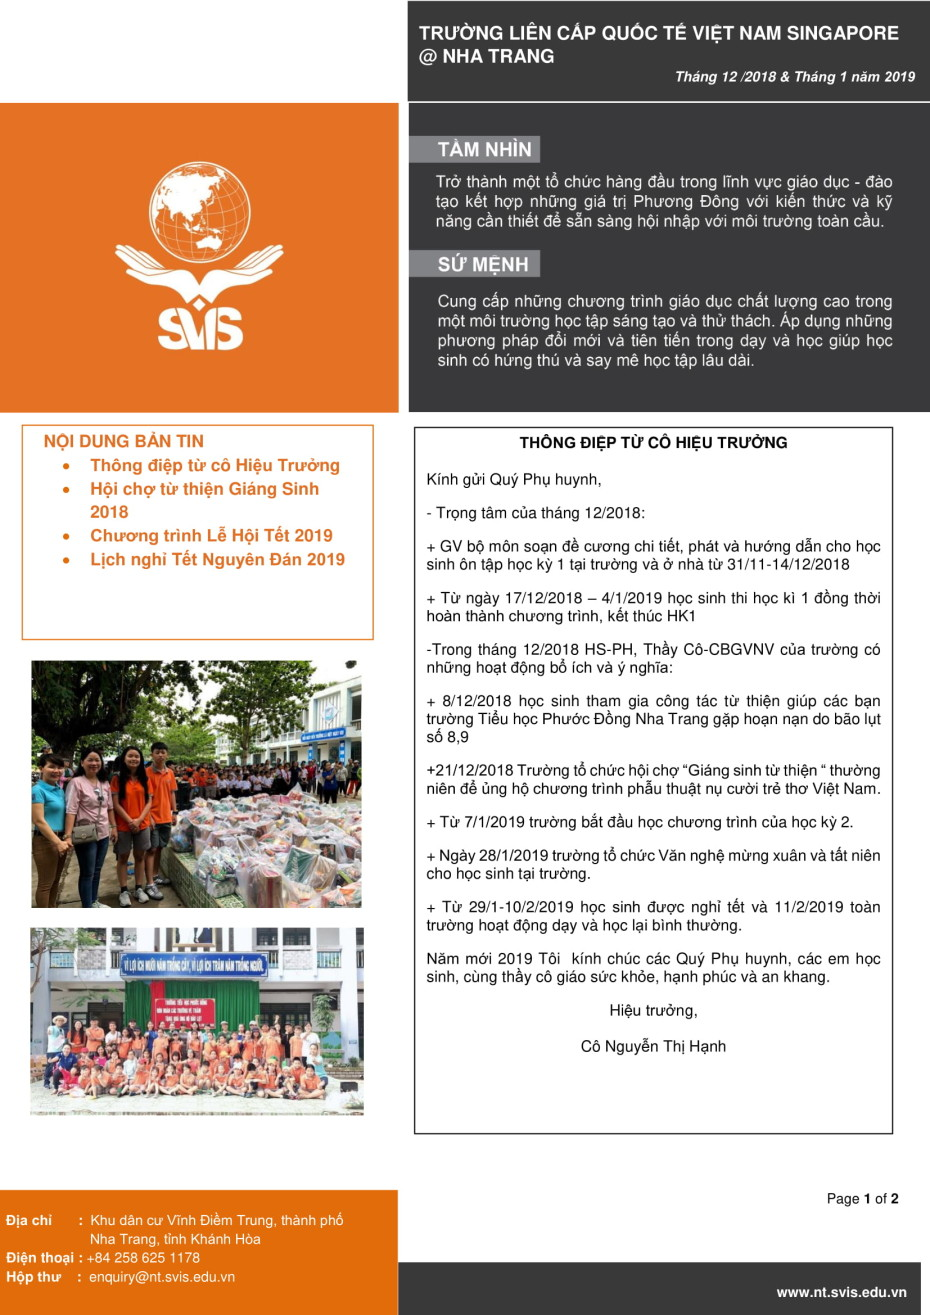 SVIS@NT_Newsletter_Dec 2018 & Jan 2019_VN-1